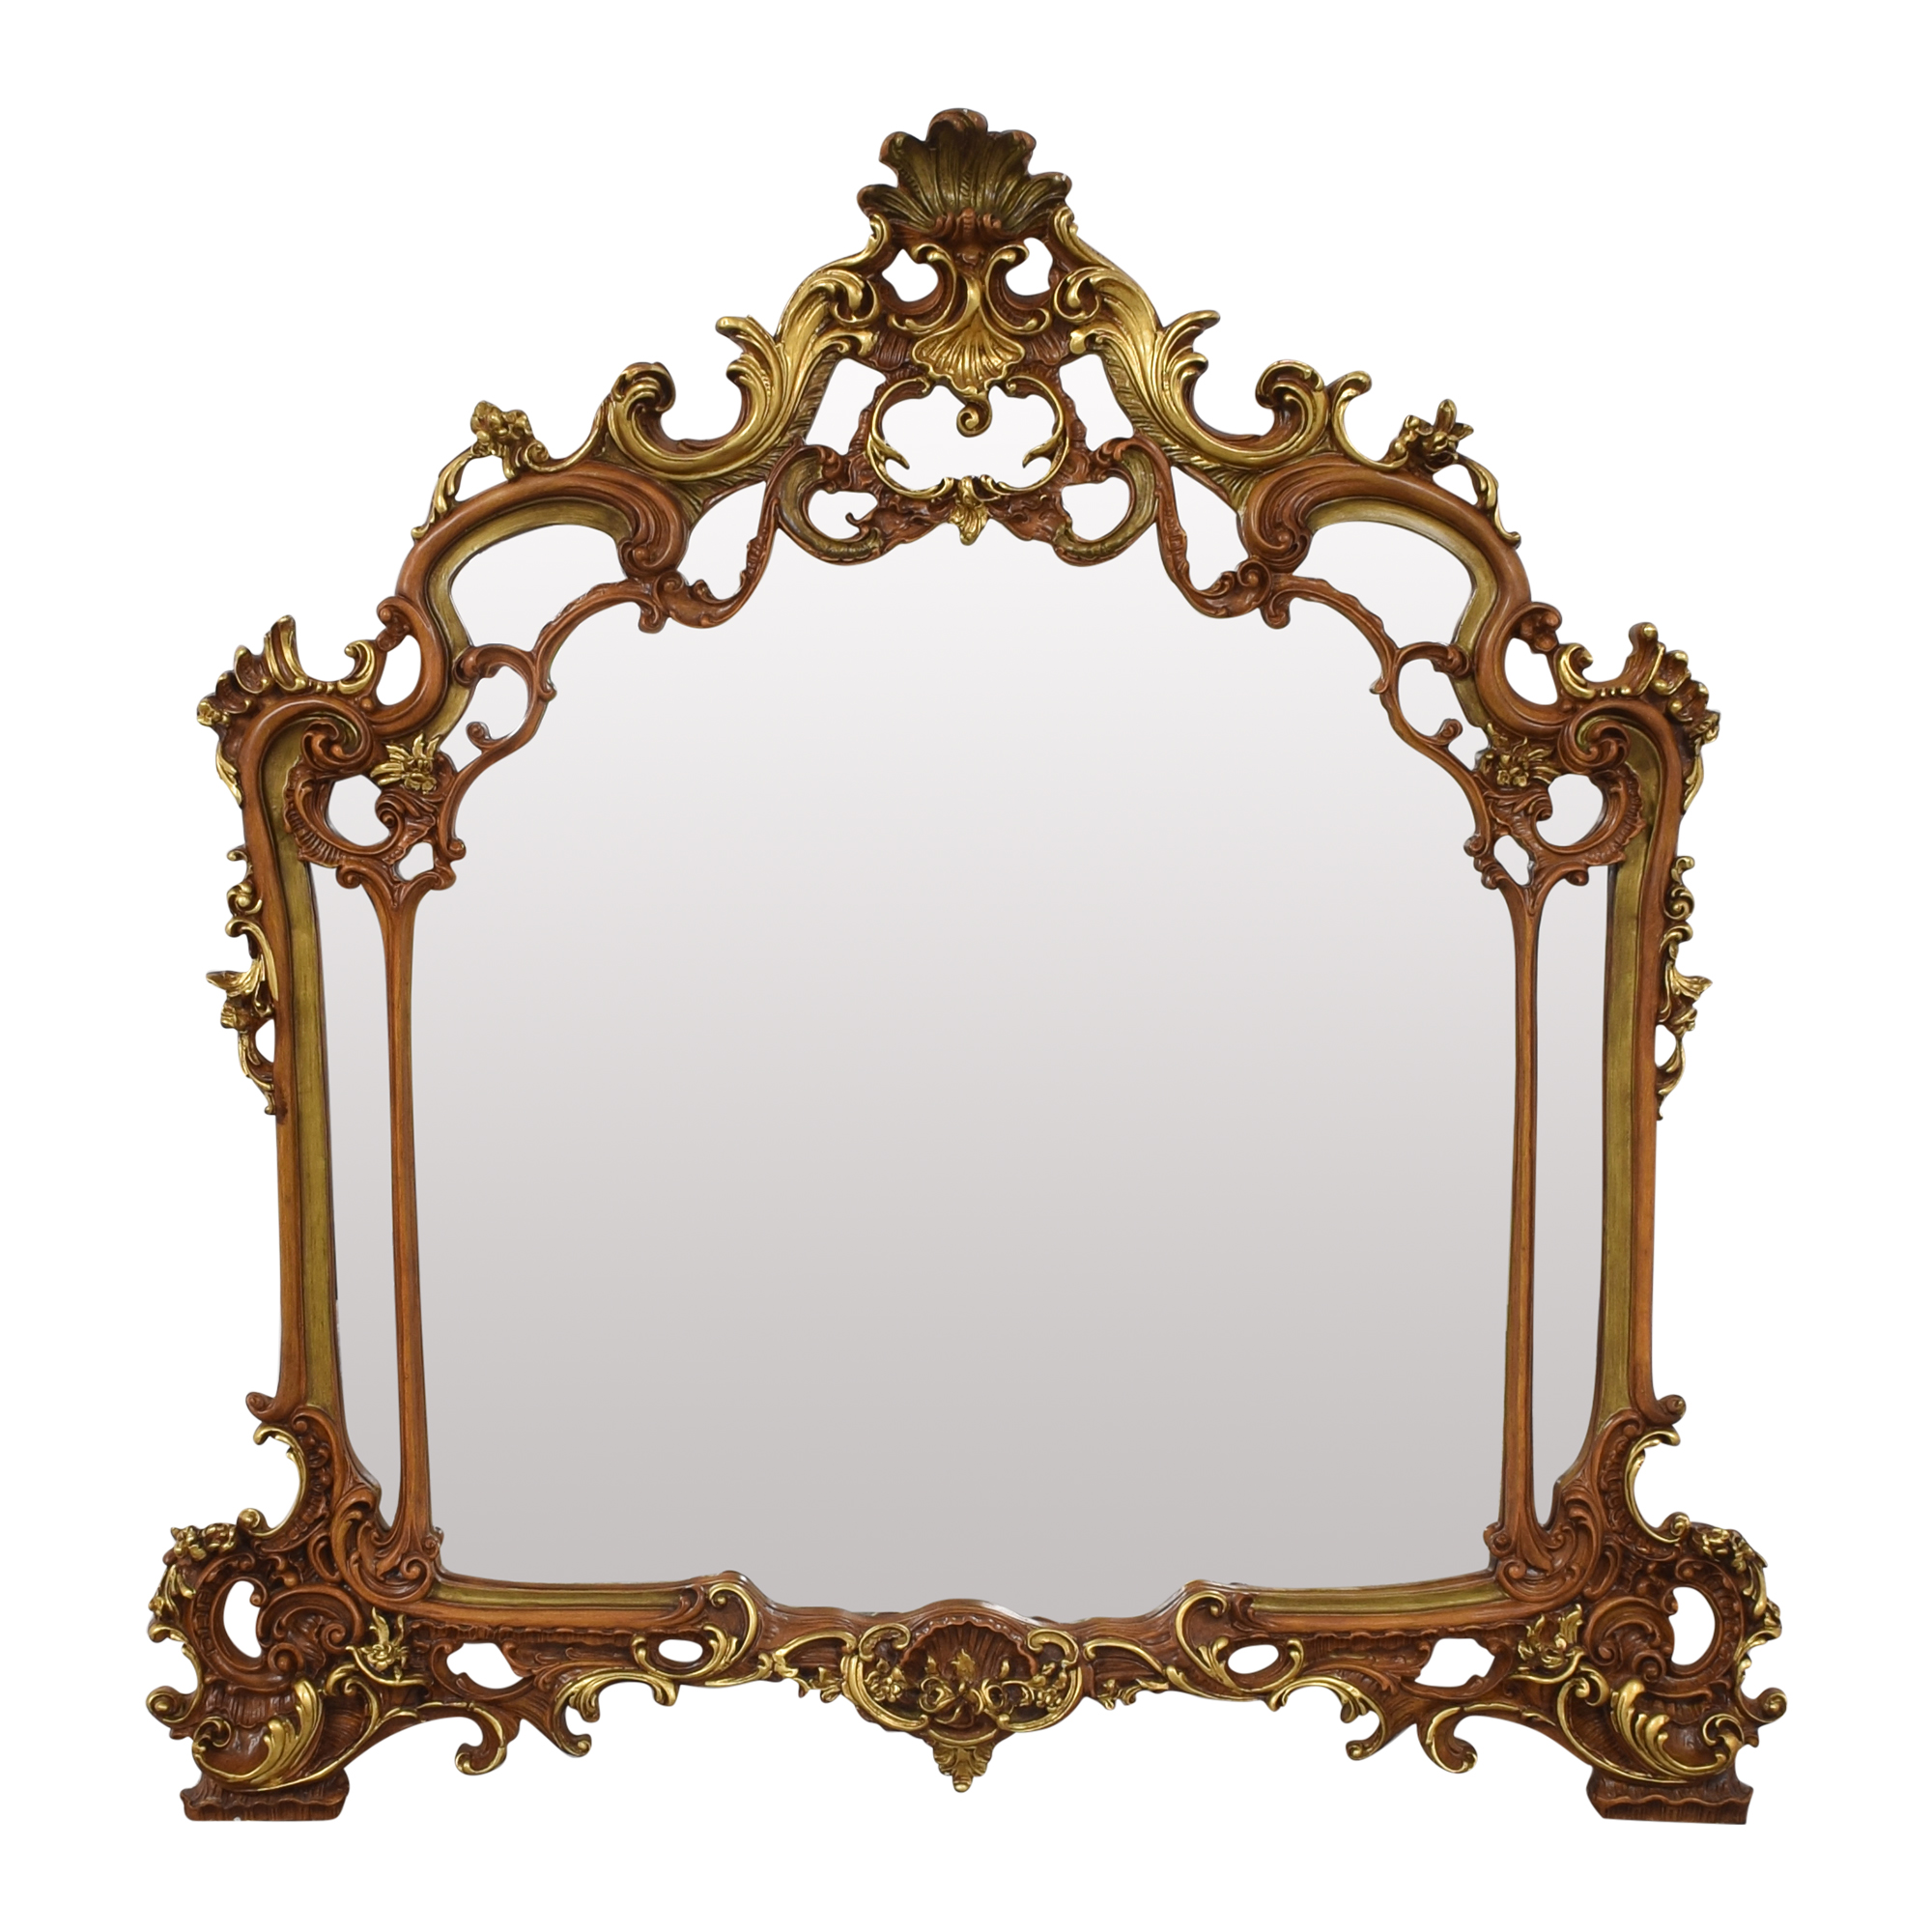 Crowned Top Mirror for sale